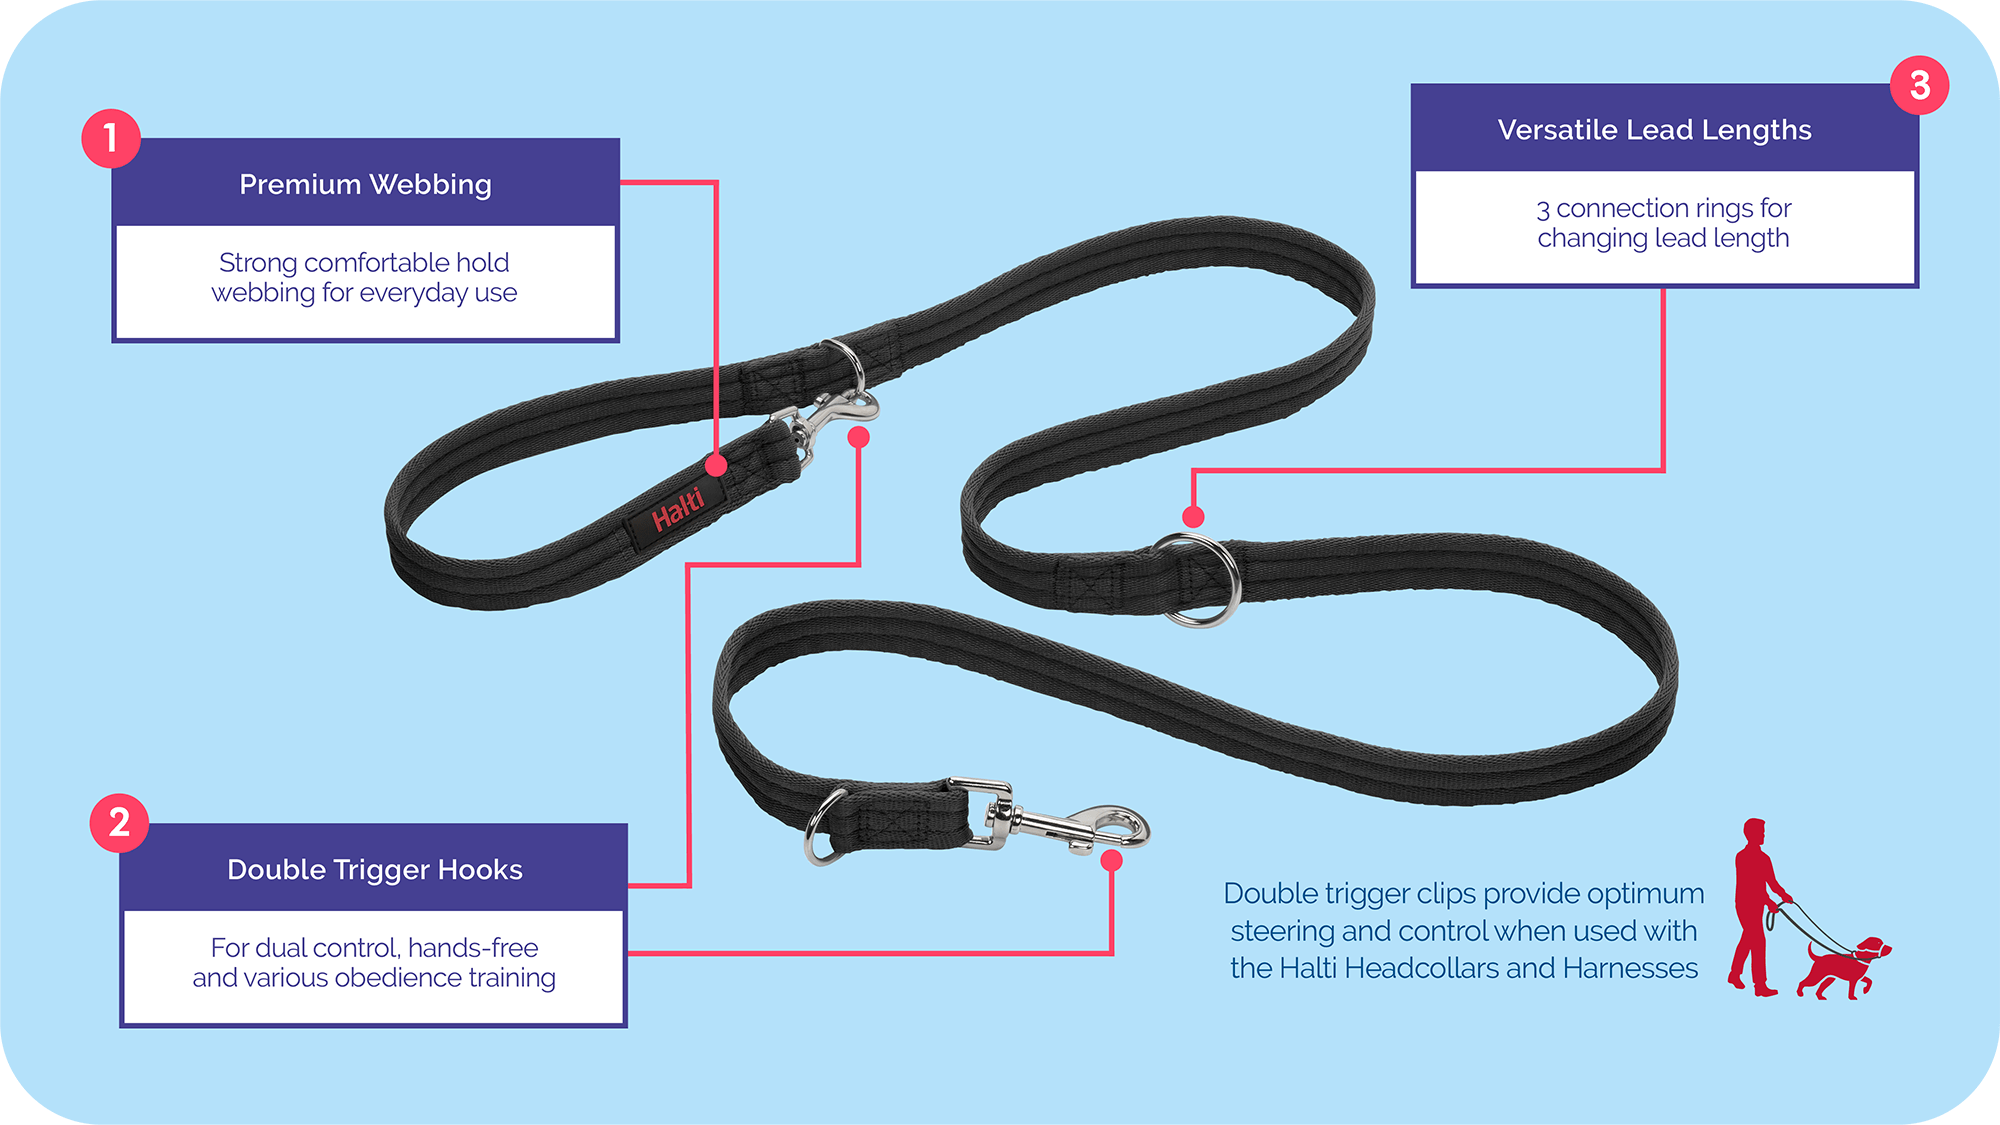 Features guide for Halti Training Lead